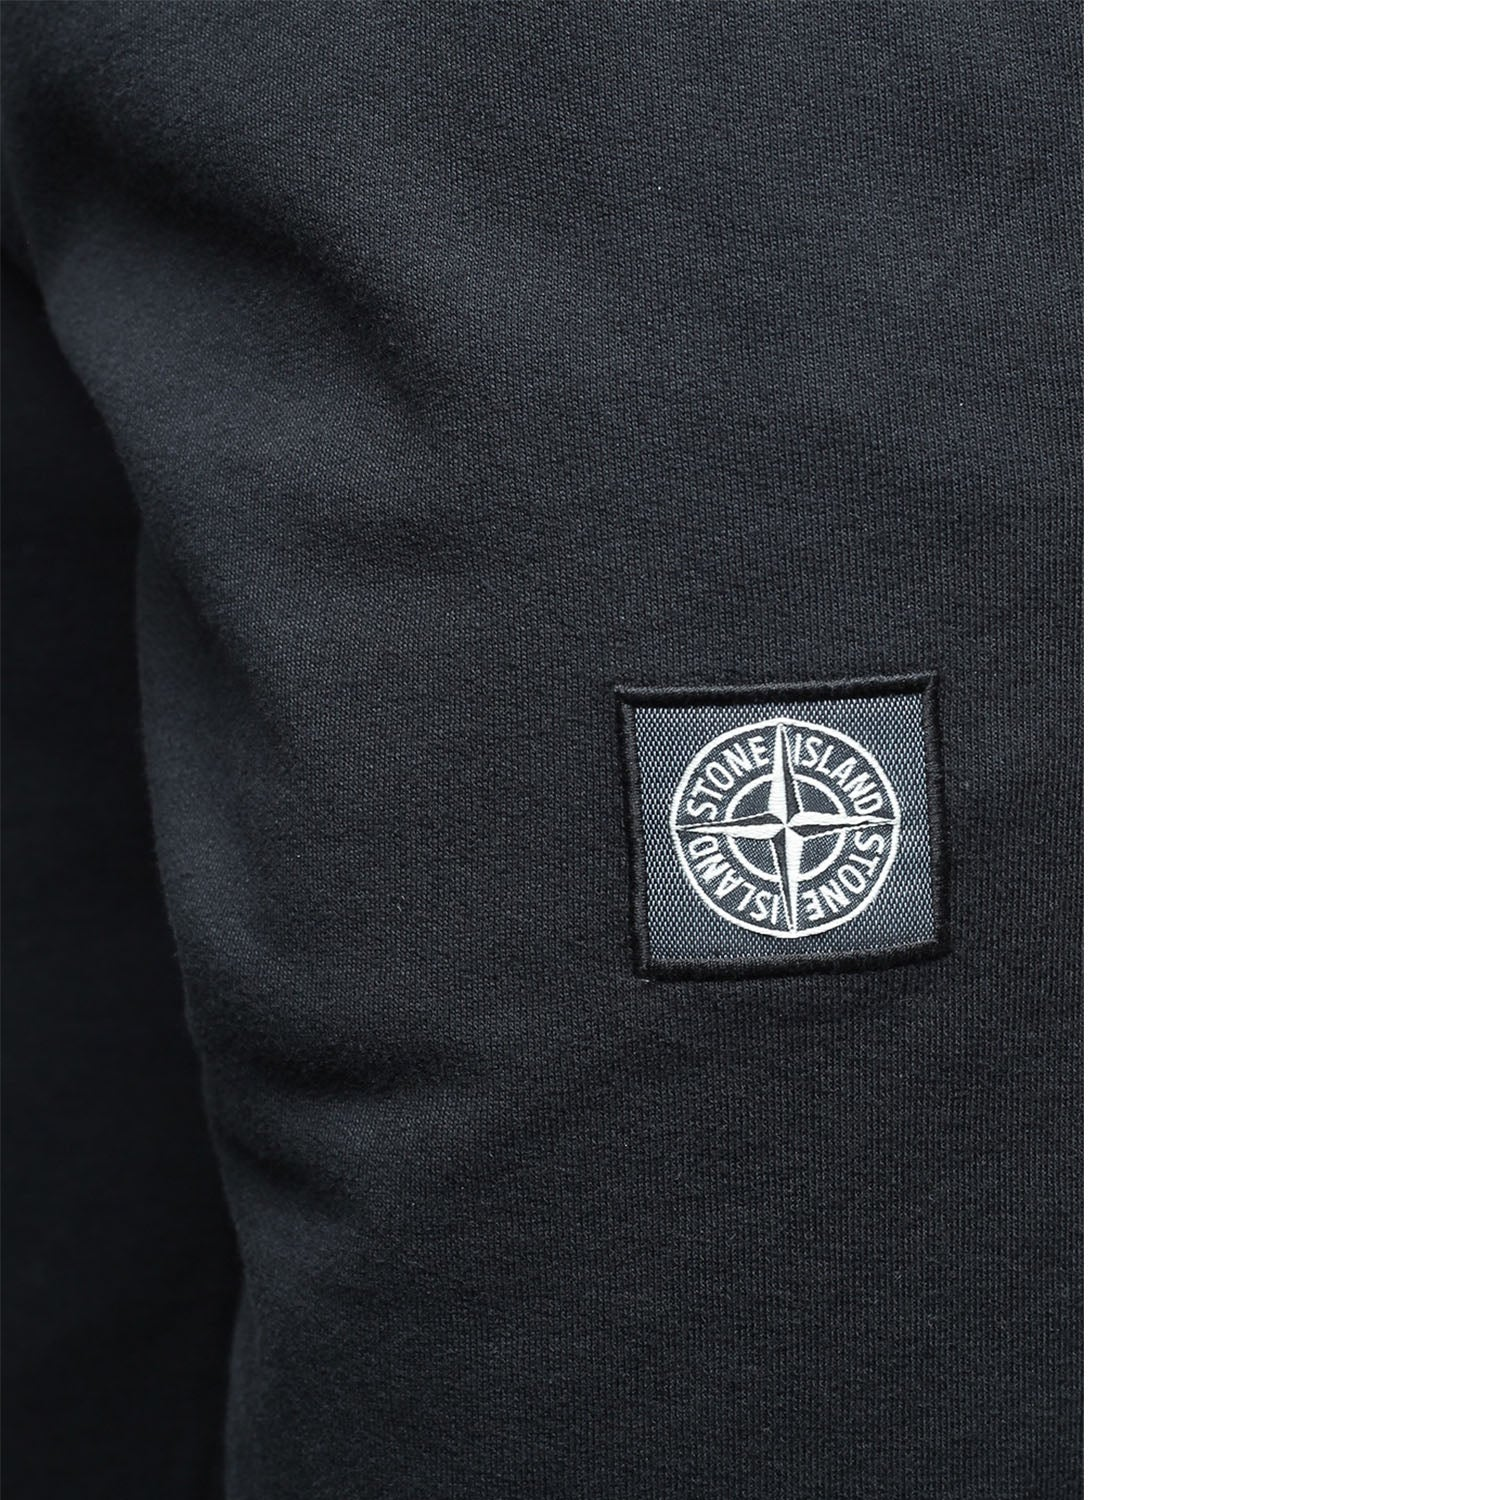 Stone Island Embroidered Logo Patch Sweatpants Black